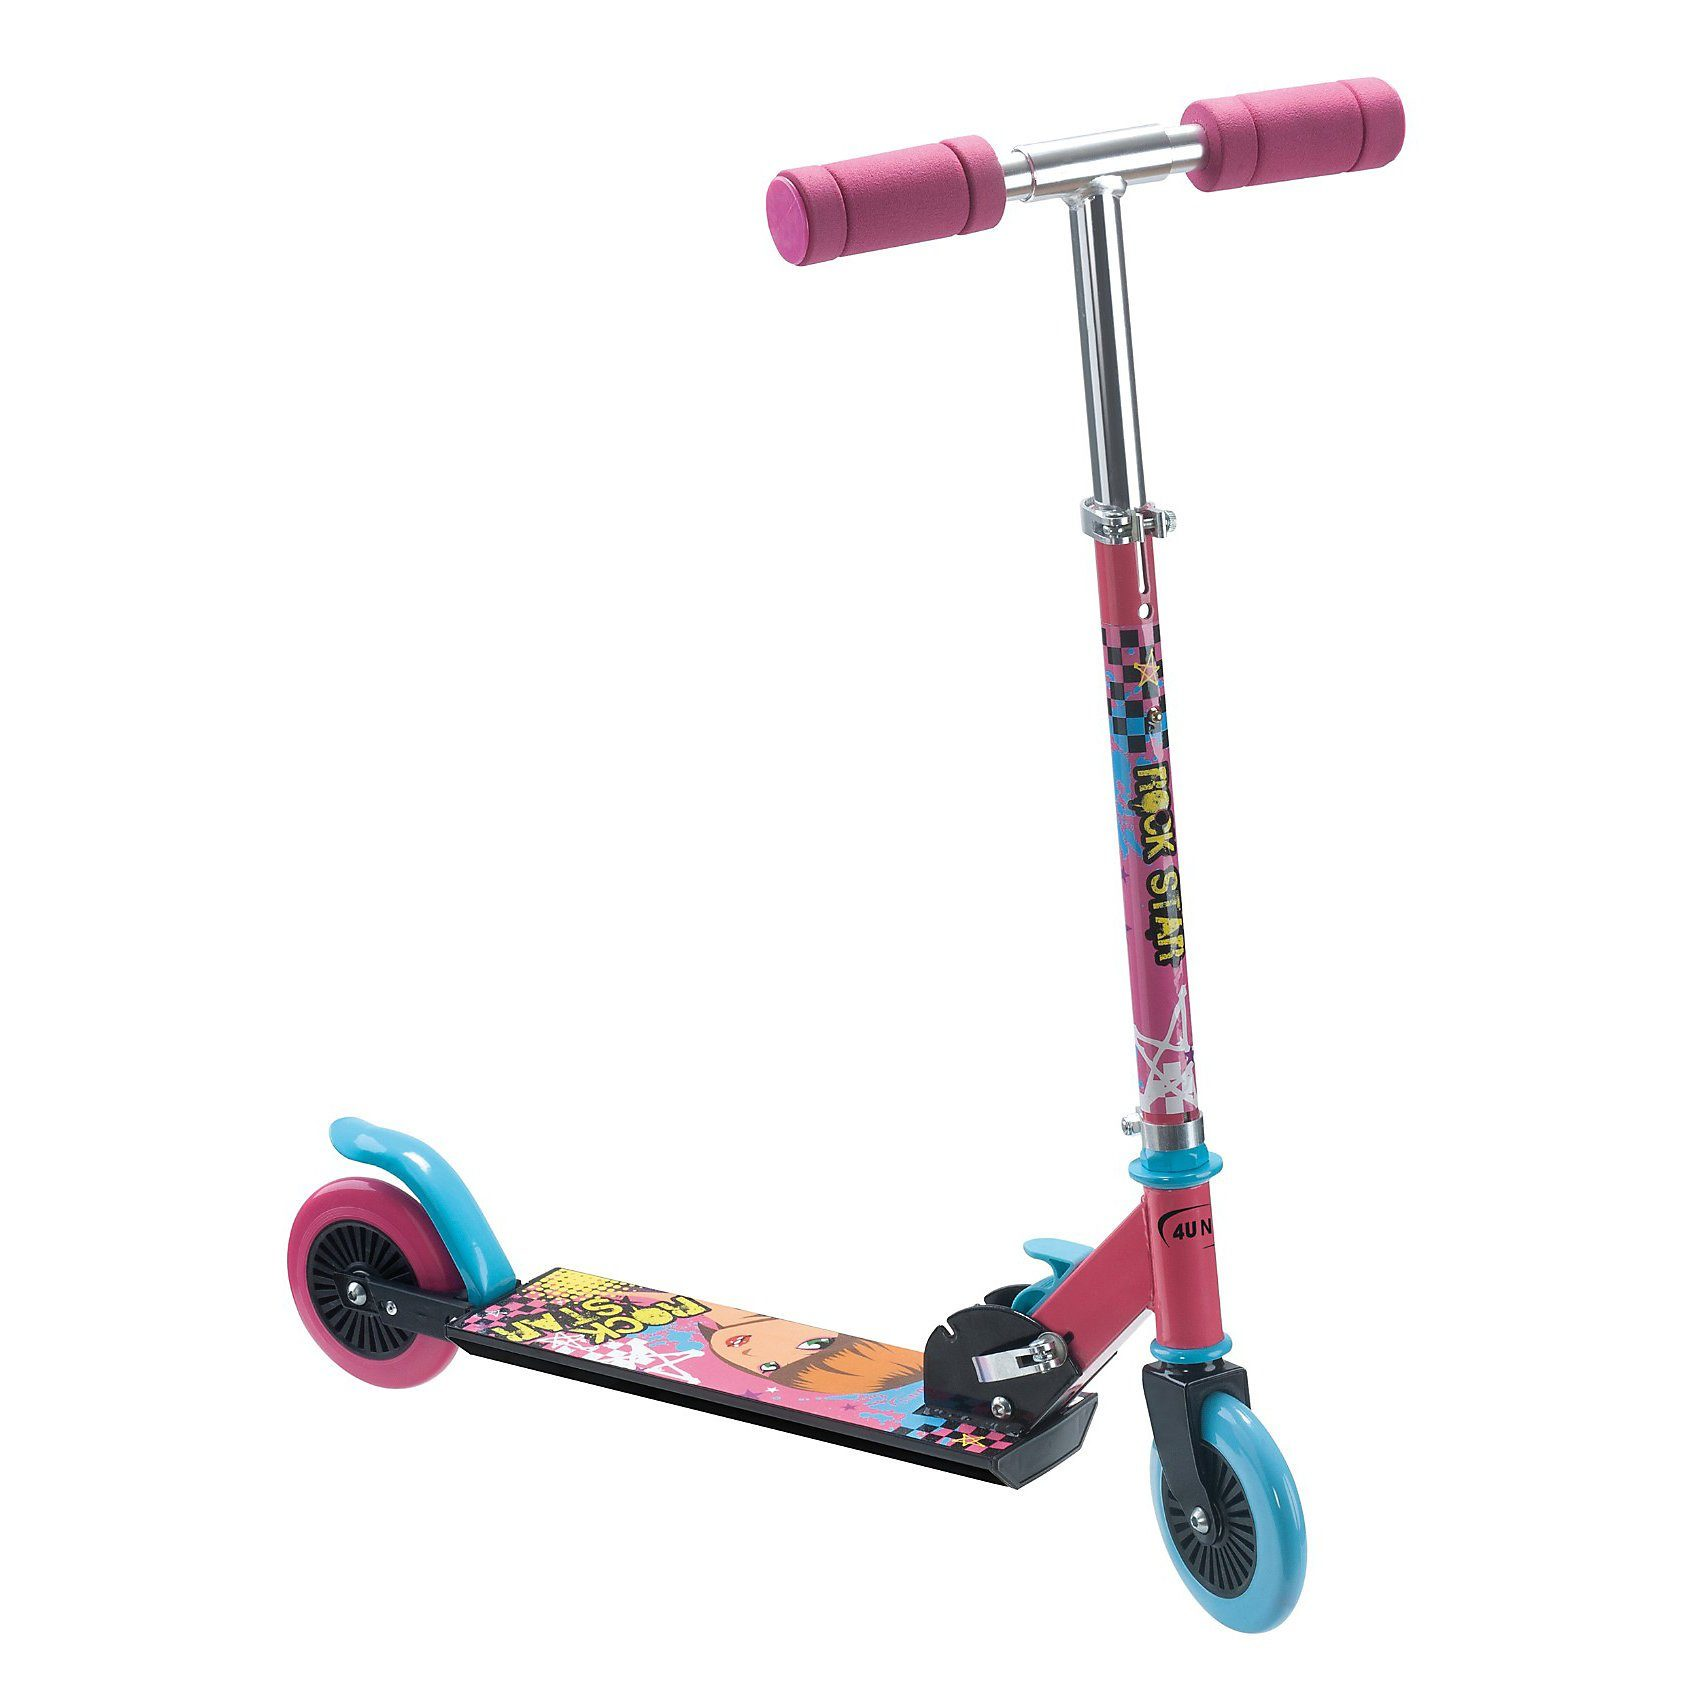 4UNIQ Scooter Jr. 120 XP, pink